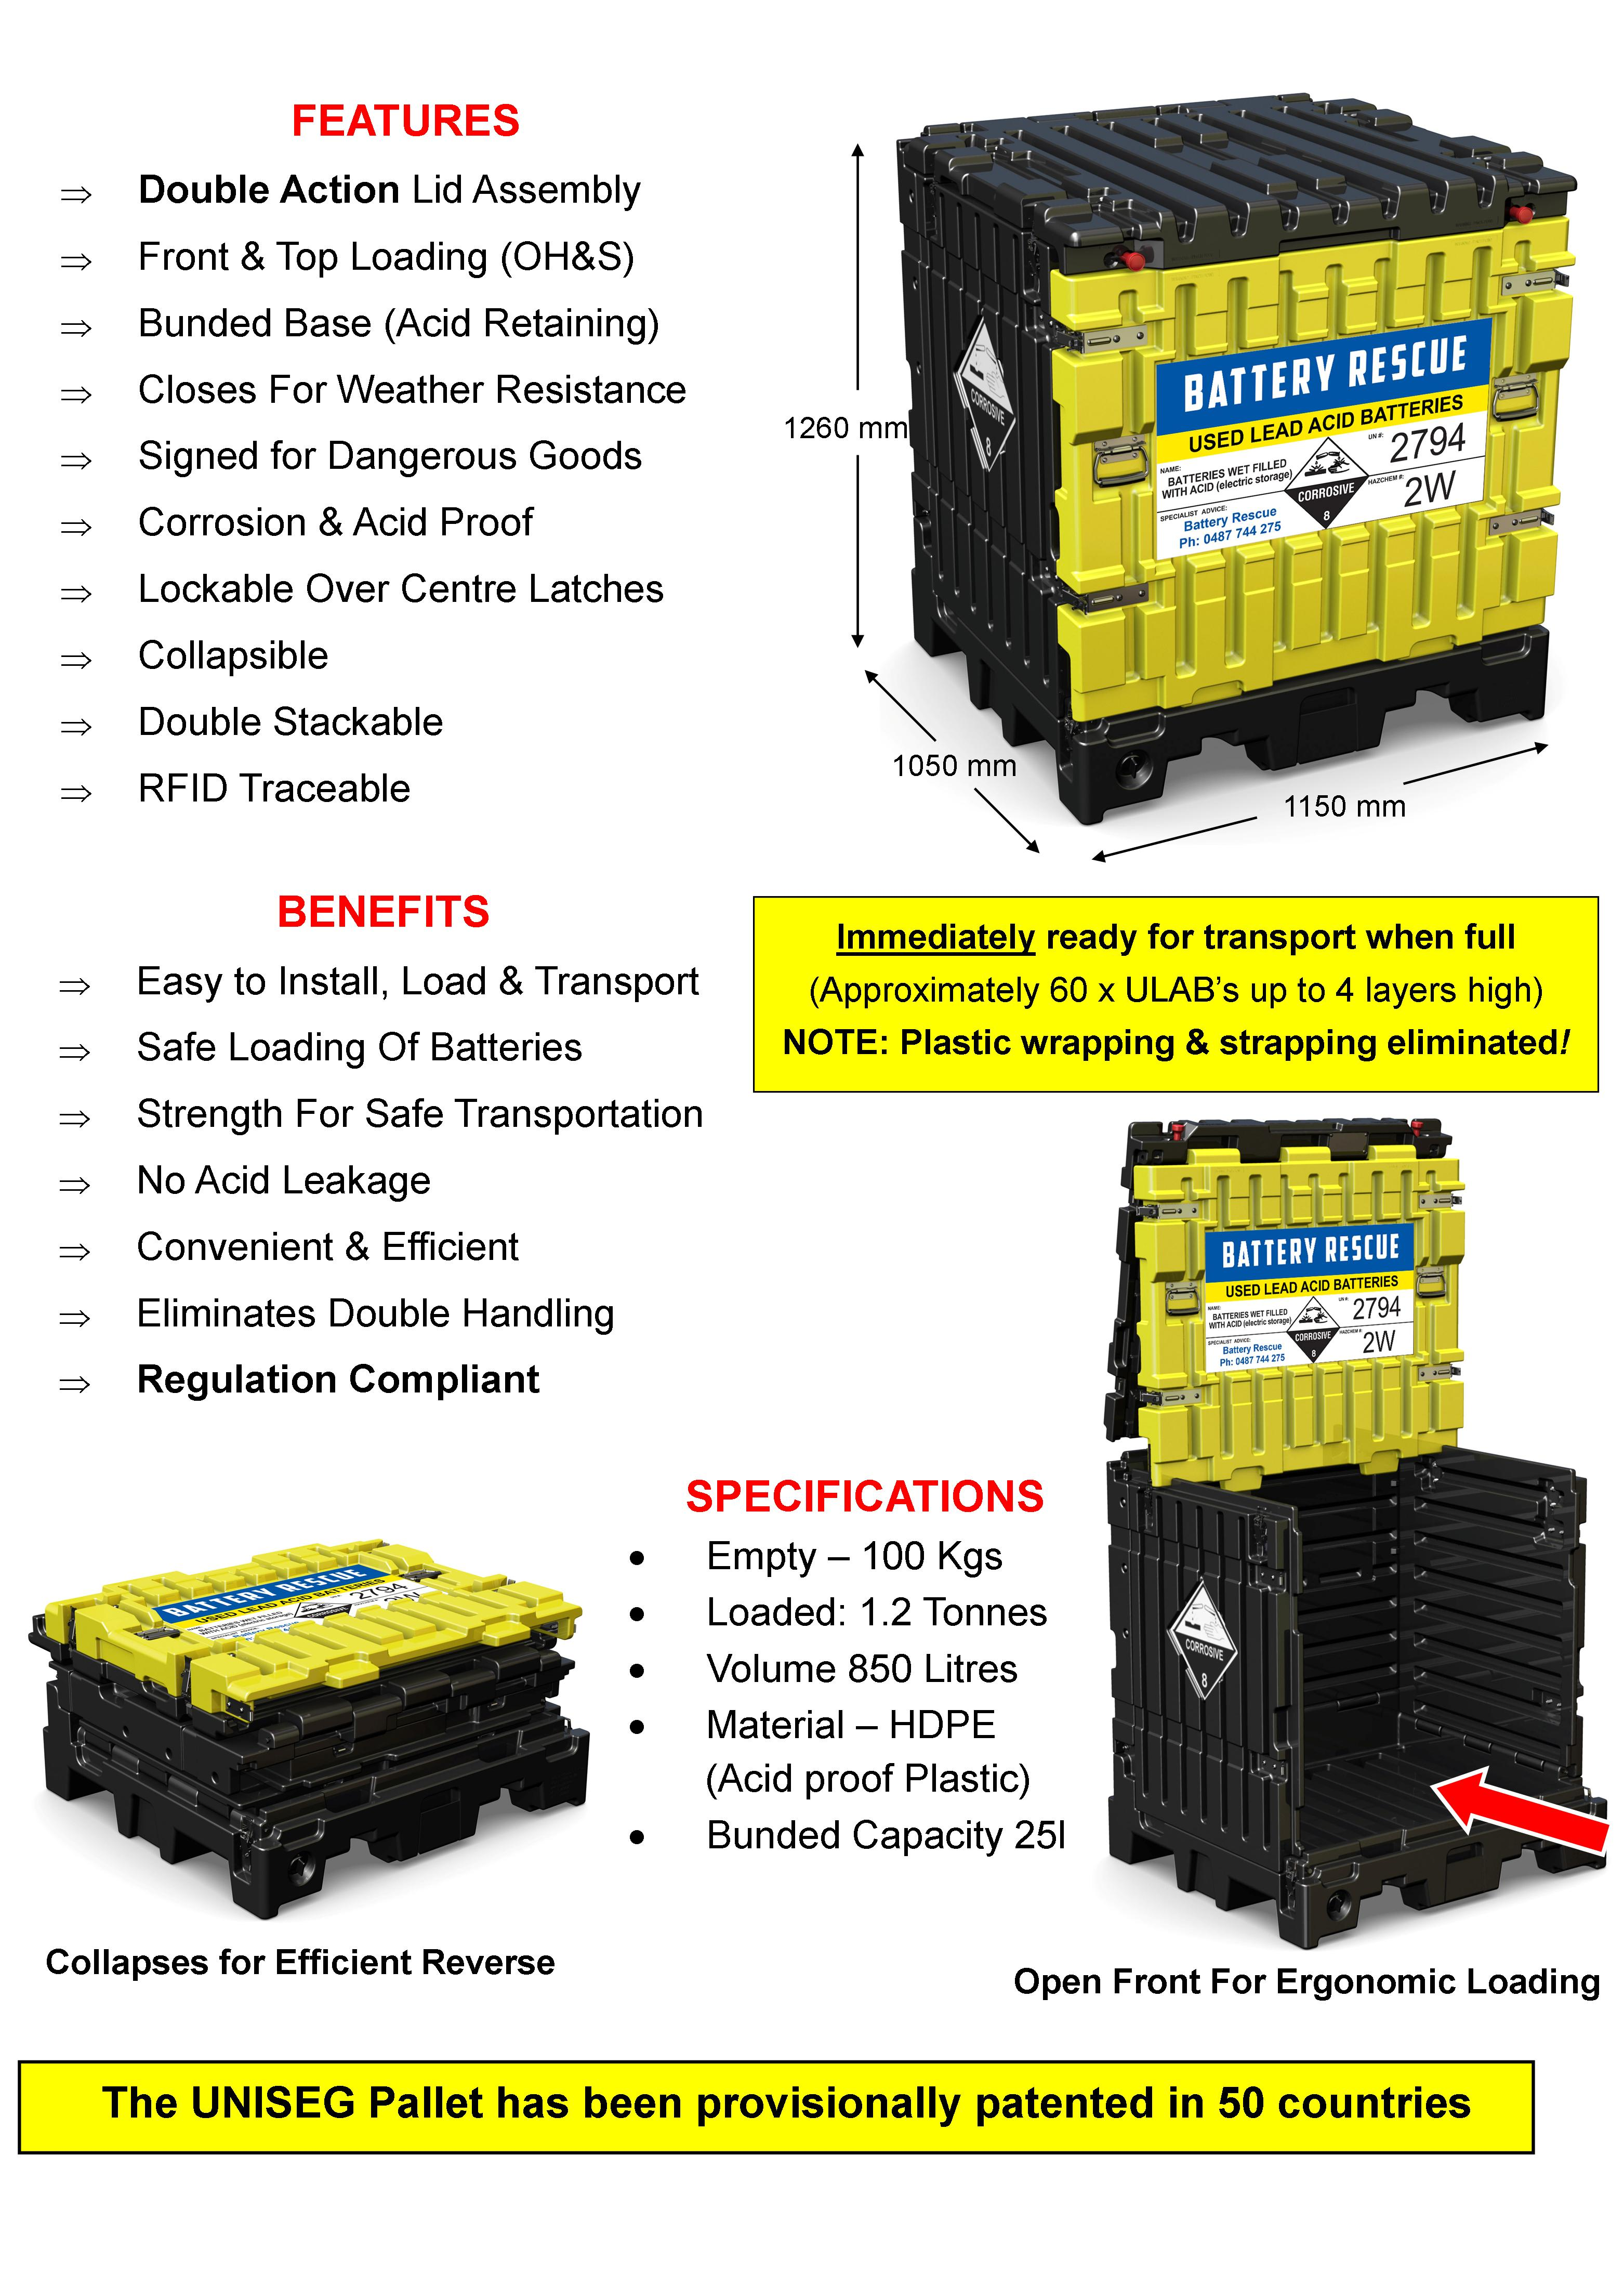 UNISEG Pallet features for used battery collections